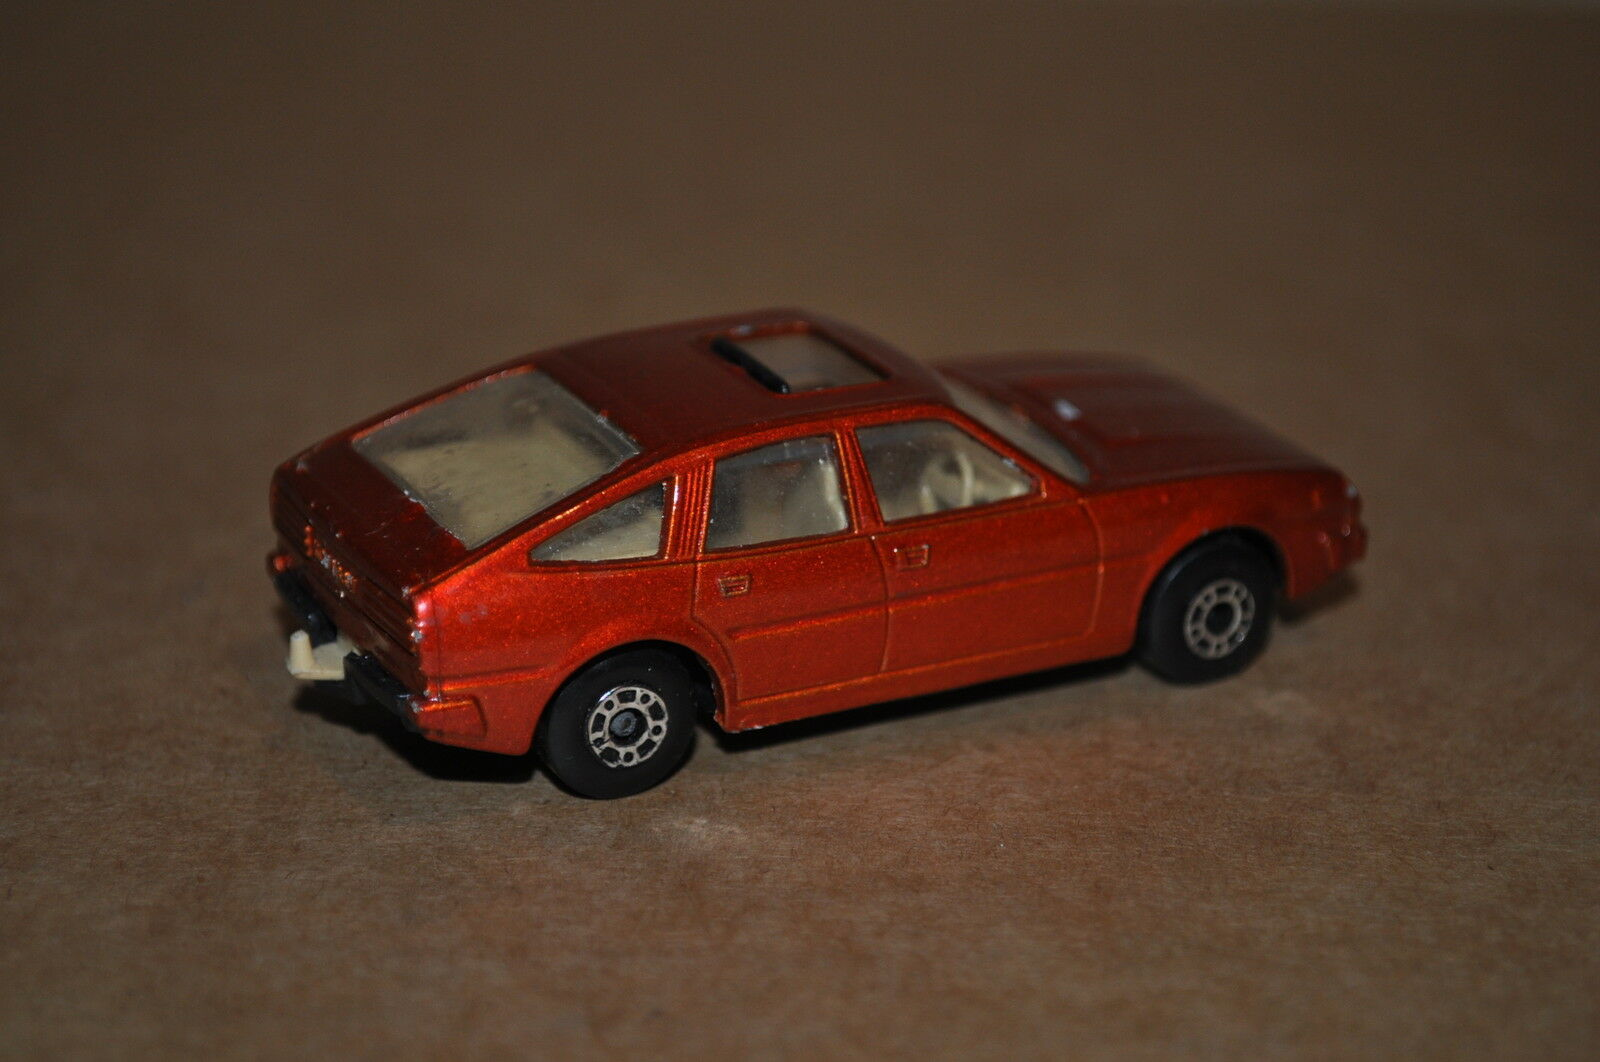 RARE MATCHBOX TOY - ROVER 3500 COLLECTABLE - MINT MINT MINT CONDITION  - FREE SHIPPING  963b7f